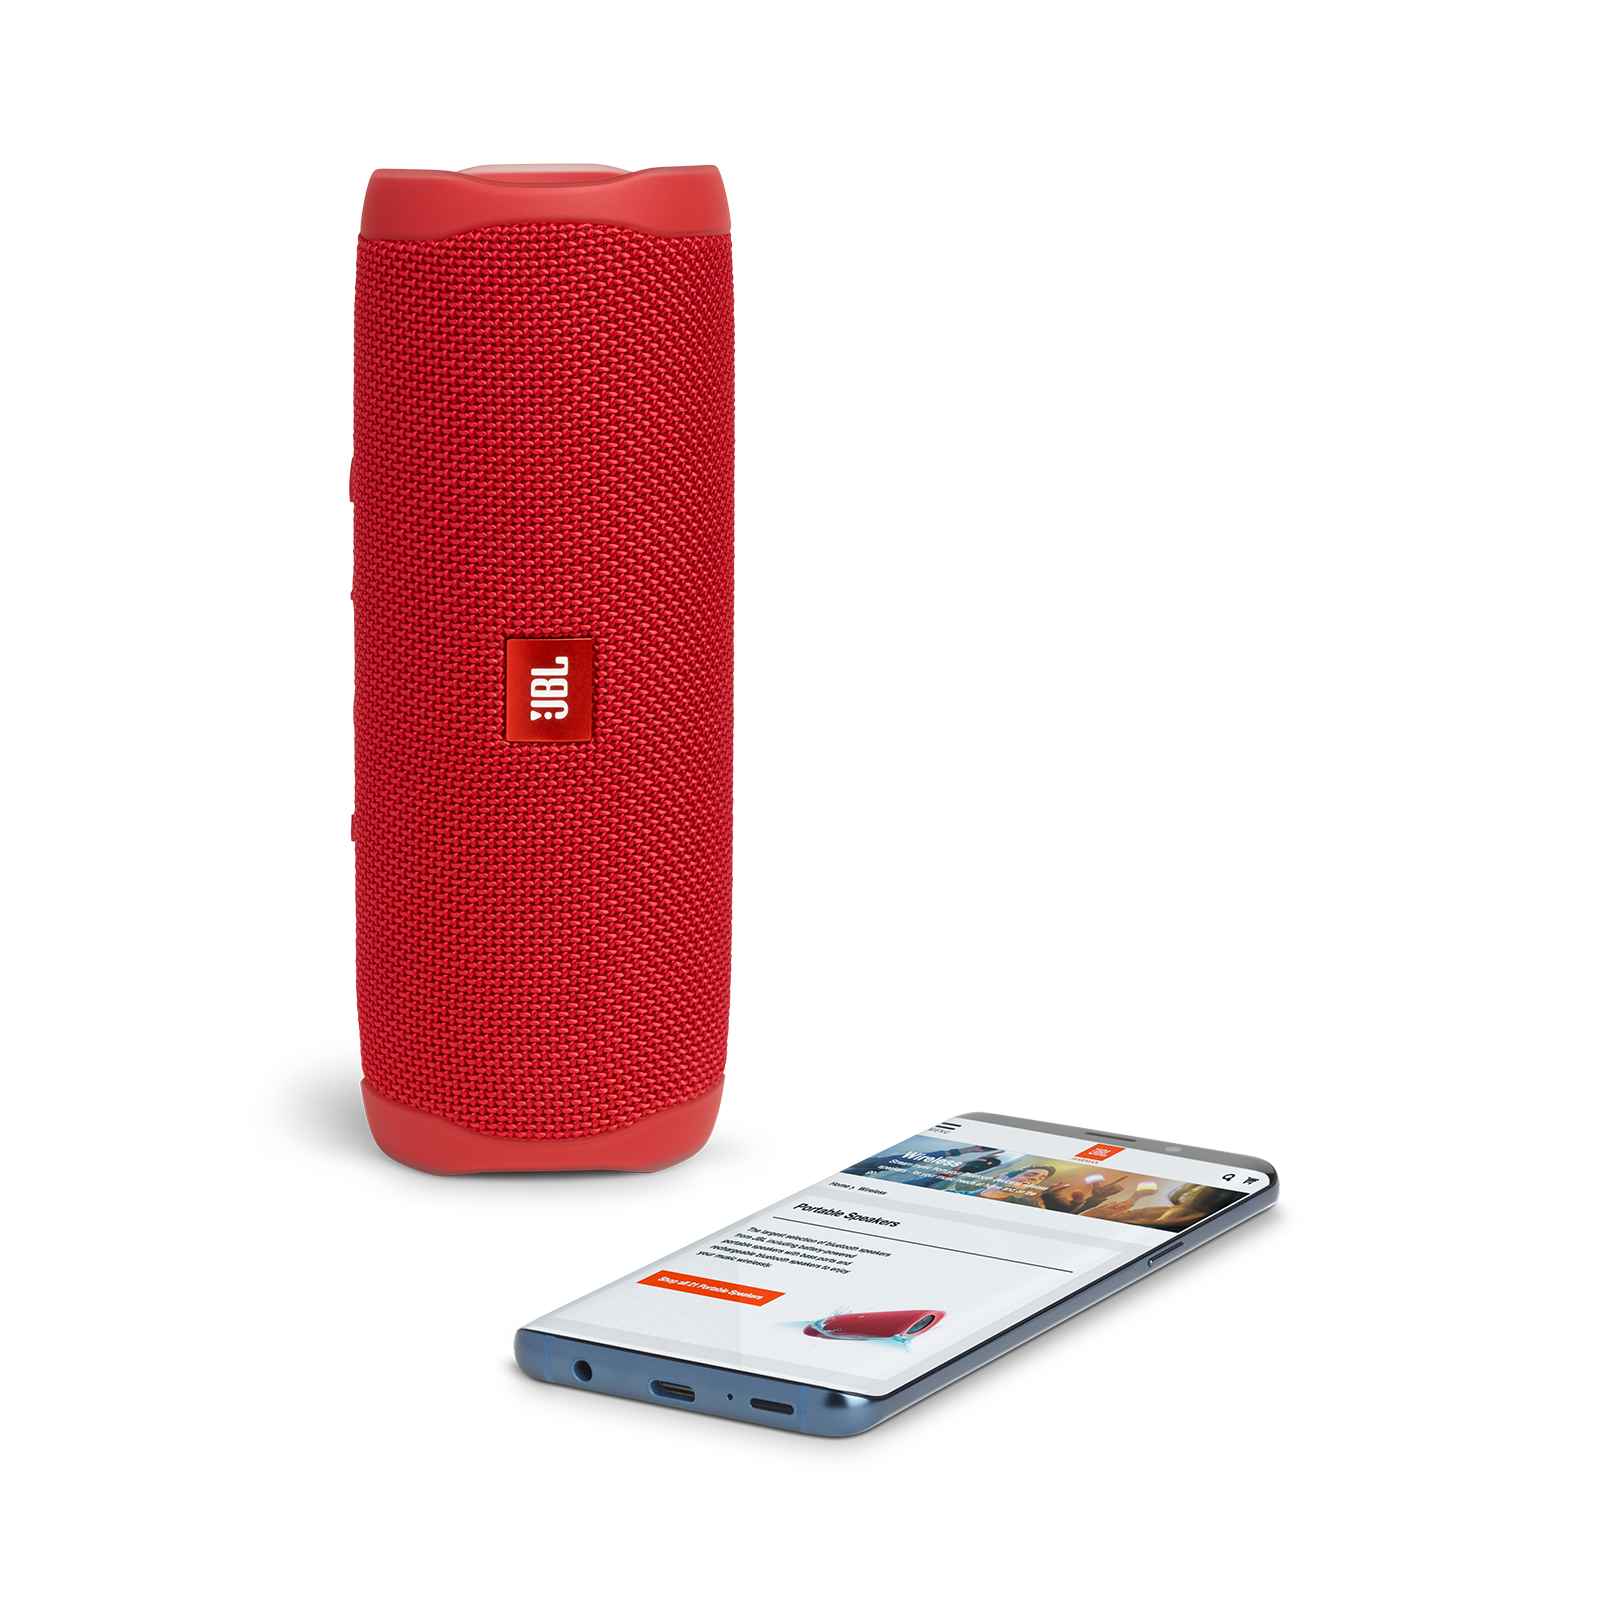 JBL FLIP 5 - Red - Portable Waterproof Speaker - Detailshot 2